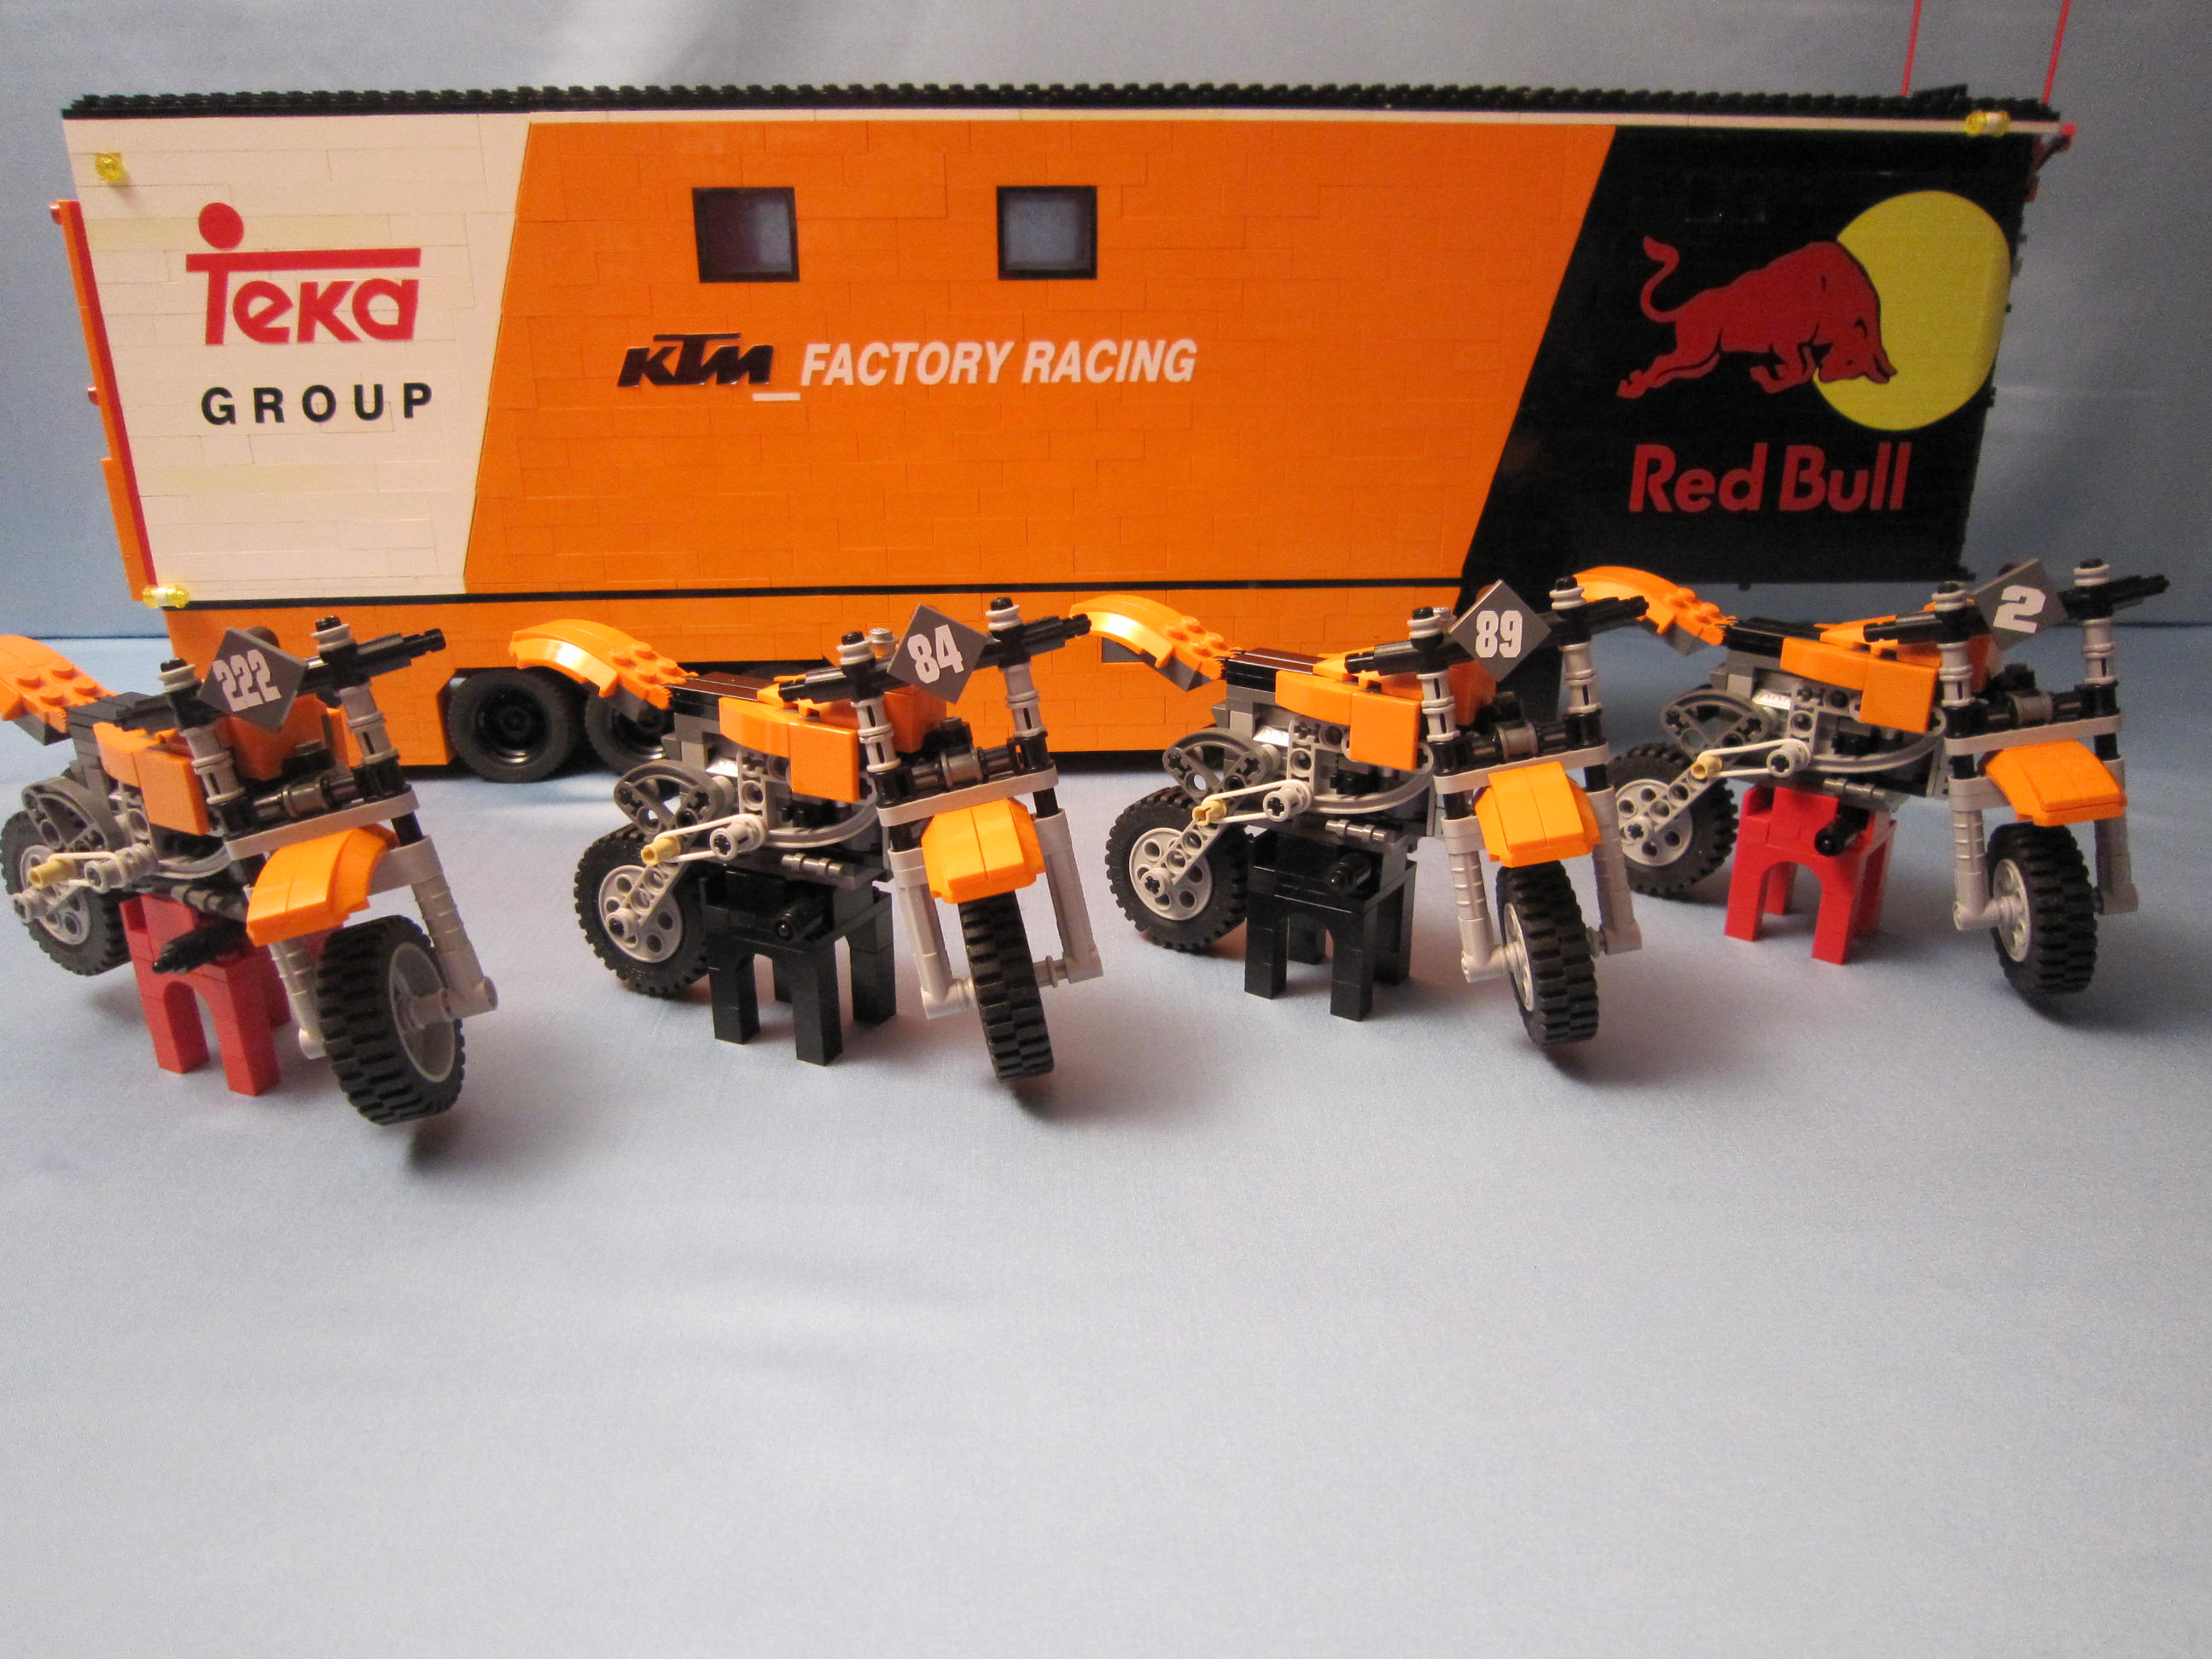 tribute_ktm_factory_racing_028.jpg